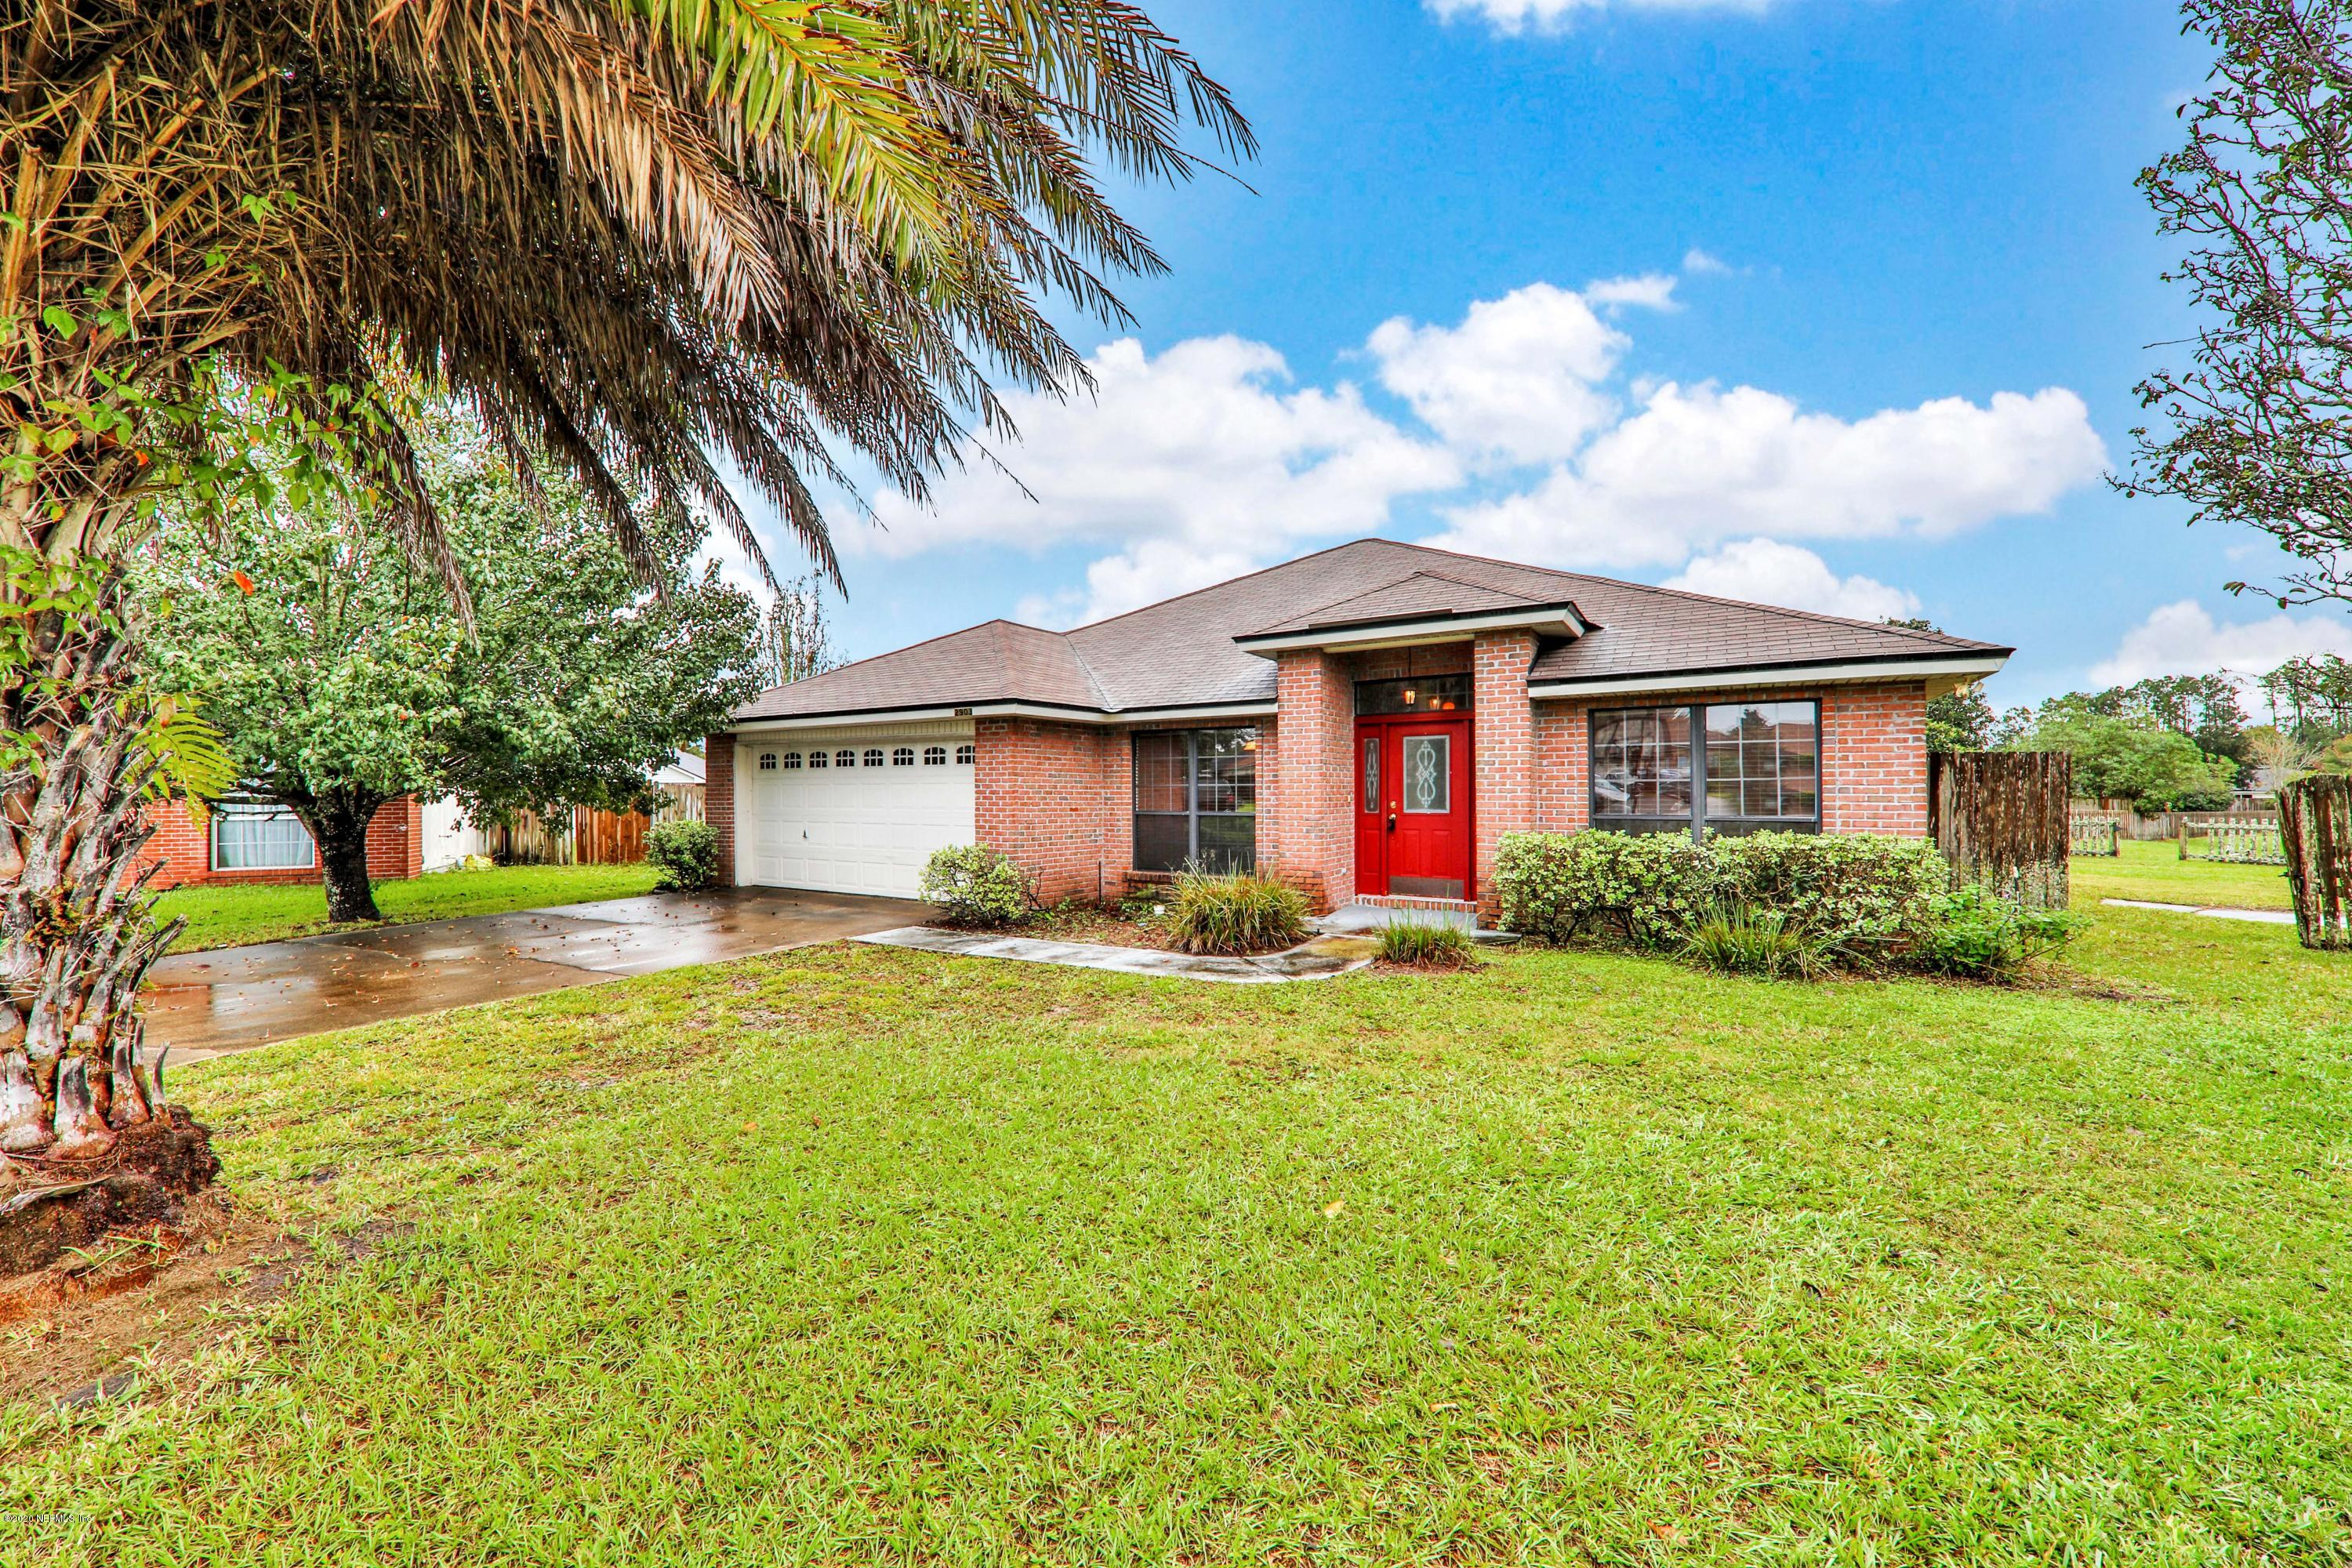 2903 CRANES LANDING, ORANGE PARK, FLORIDA 32073, 3 Bedrooms Bedrooms, ,2 BathroomsBathrooms,Residential,For sale,CRANES LANDING,1082020